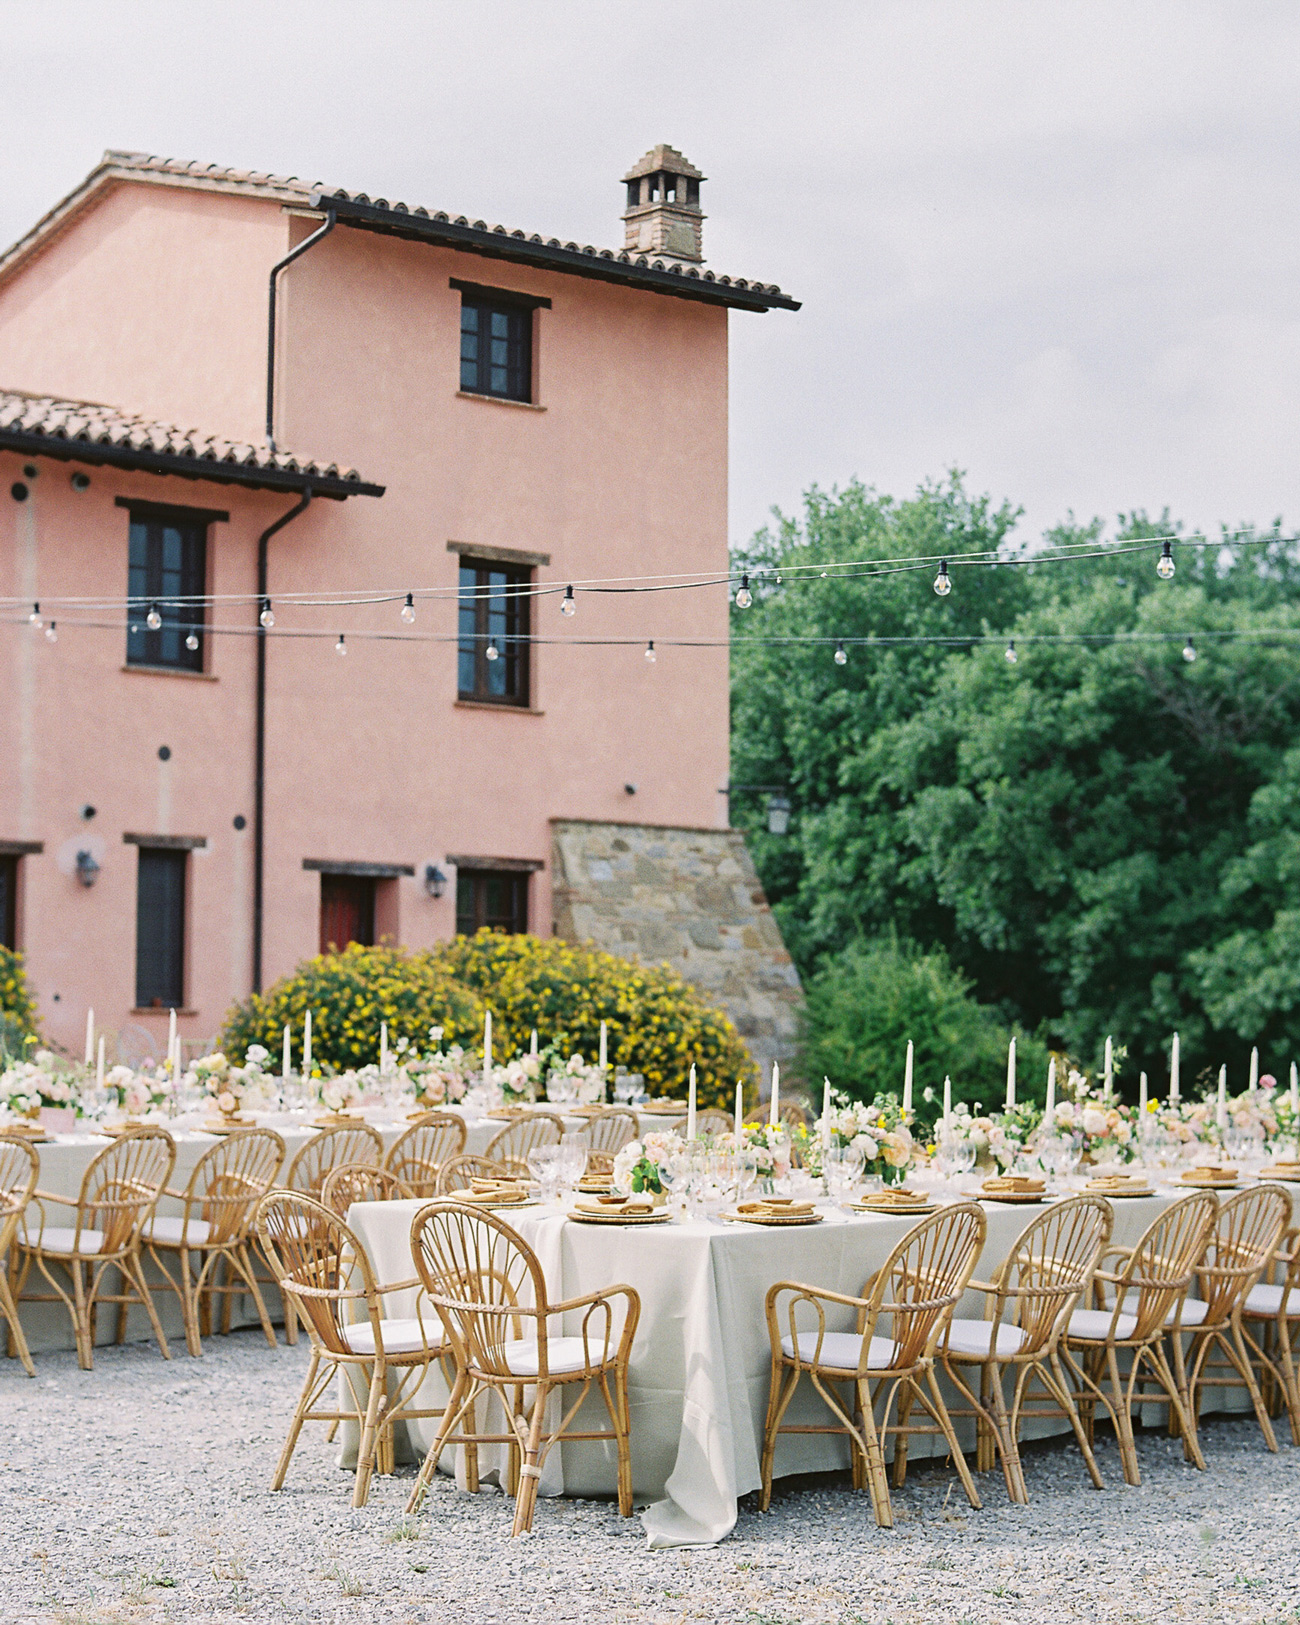 outdoor reception tables with floral and candle centerpieces